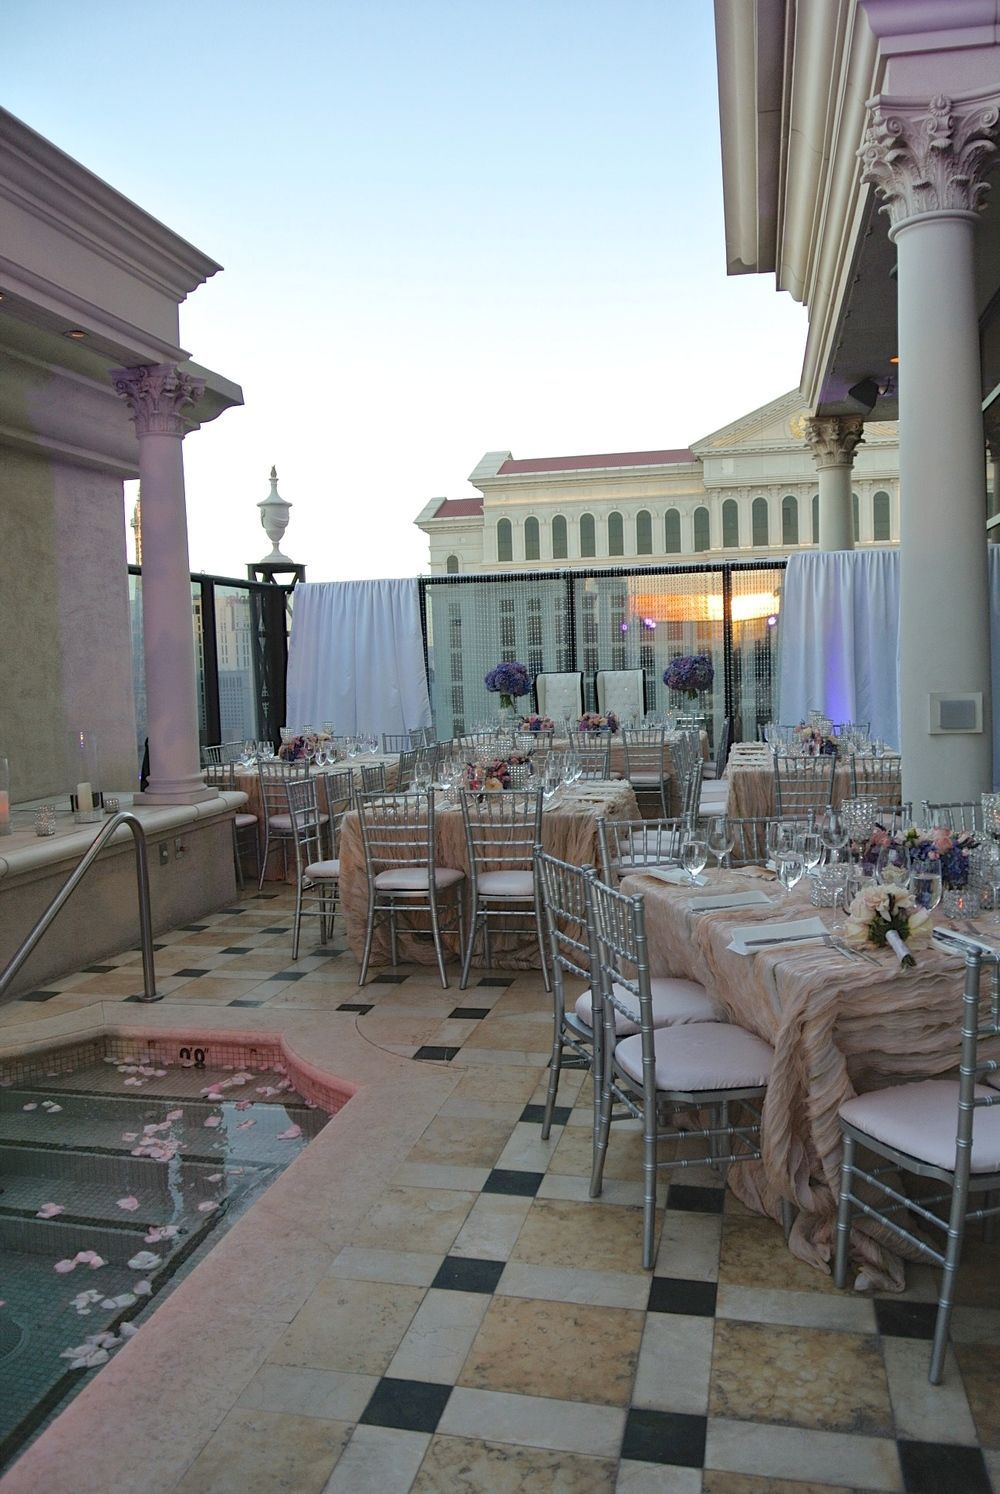 The penthouse villas of Caesars Palace are not available